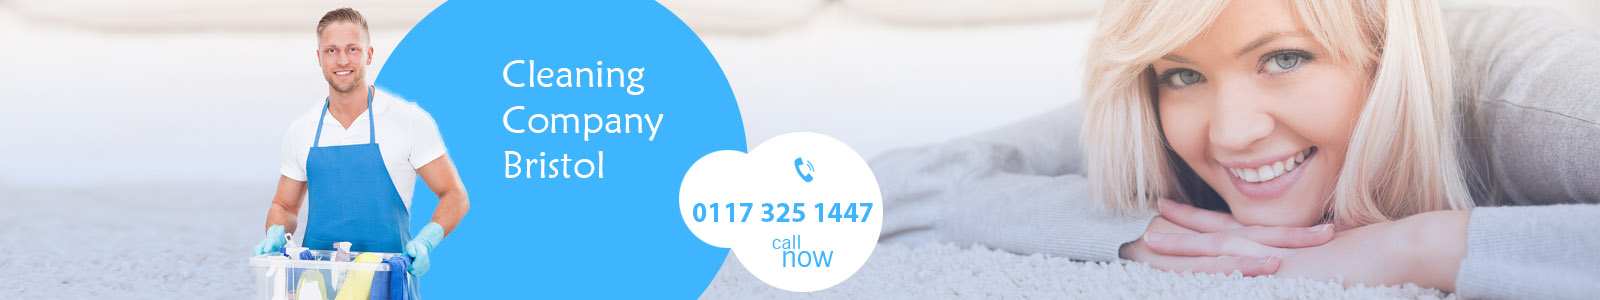 cleaning-company-bristol